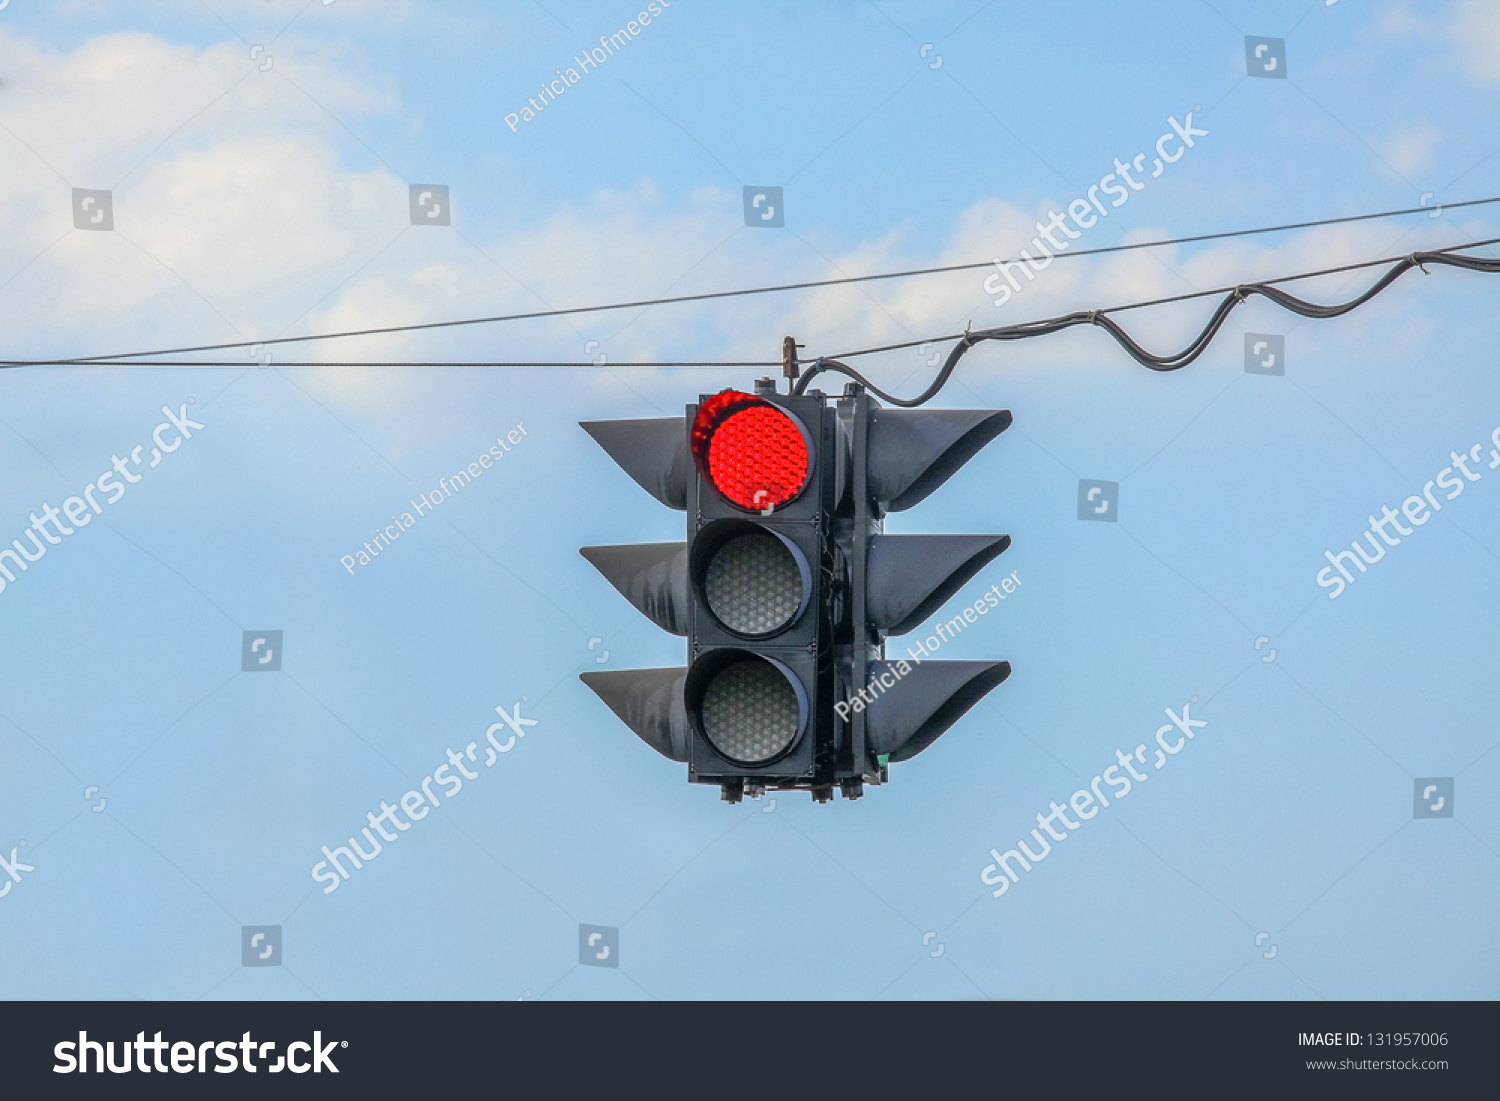 Traffic Light On Red Hanging Stock Photo Edit Now 131957006 Wiring A Fixture Blue Wire Wires In The Air